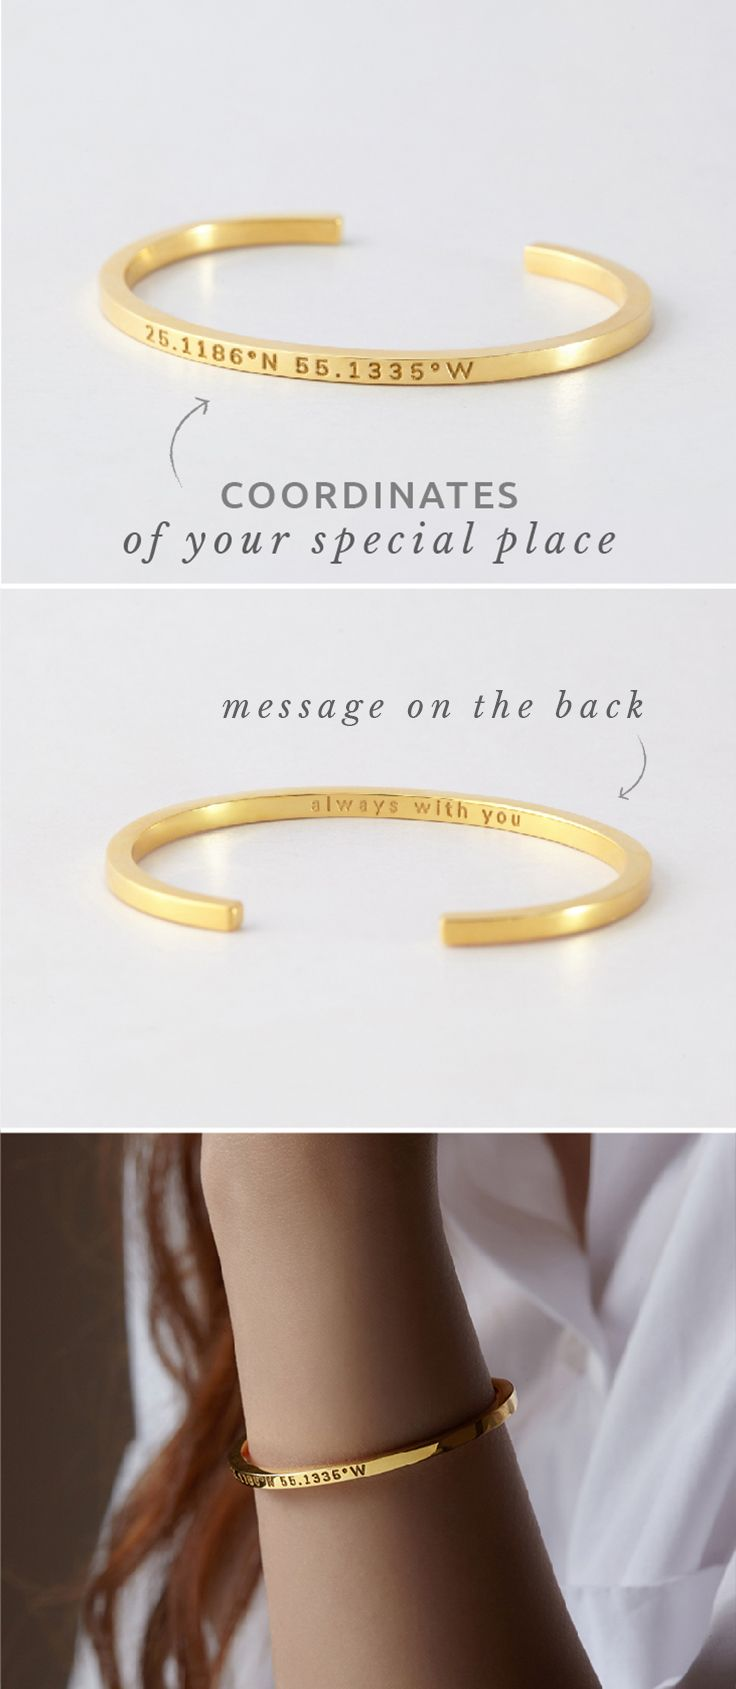 Squared Bracelet with Coordinates • Longitude and Latitude Bracelet • Coordinates Bracelet Cuff • Bracelets with coordinates • Silver coordinates bracelet • Engraved coordinates bracelet • Custom bracelet with coordinates • personalized coordinates bracelet • Minimalist bracelet • Best friend bracelet • Best Graduation Gifts • best engagement gifts for couples • happy graduation • farewell gifts • traditional engagement gifts for him • Valentine's Day Gifts